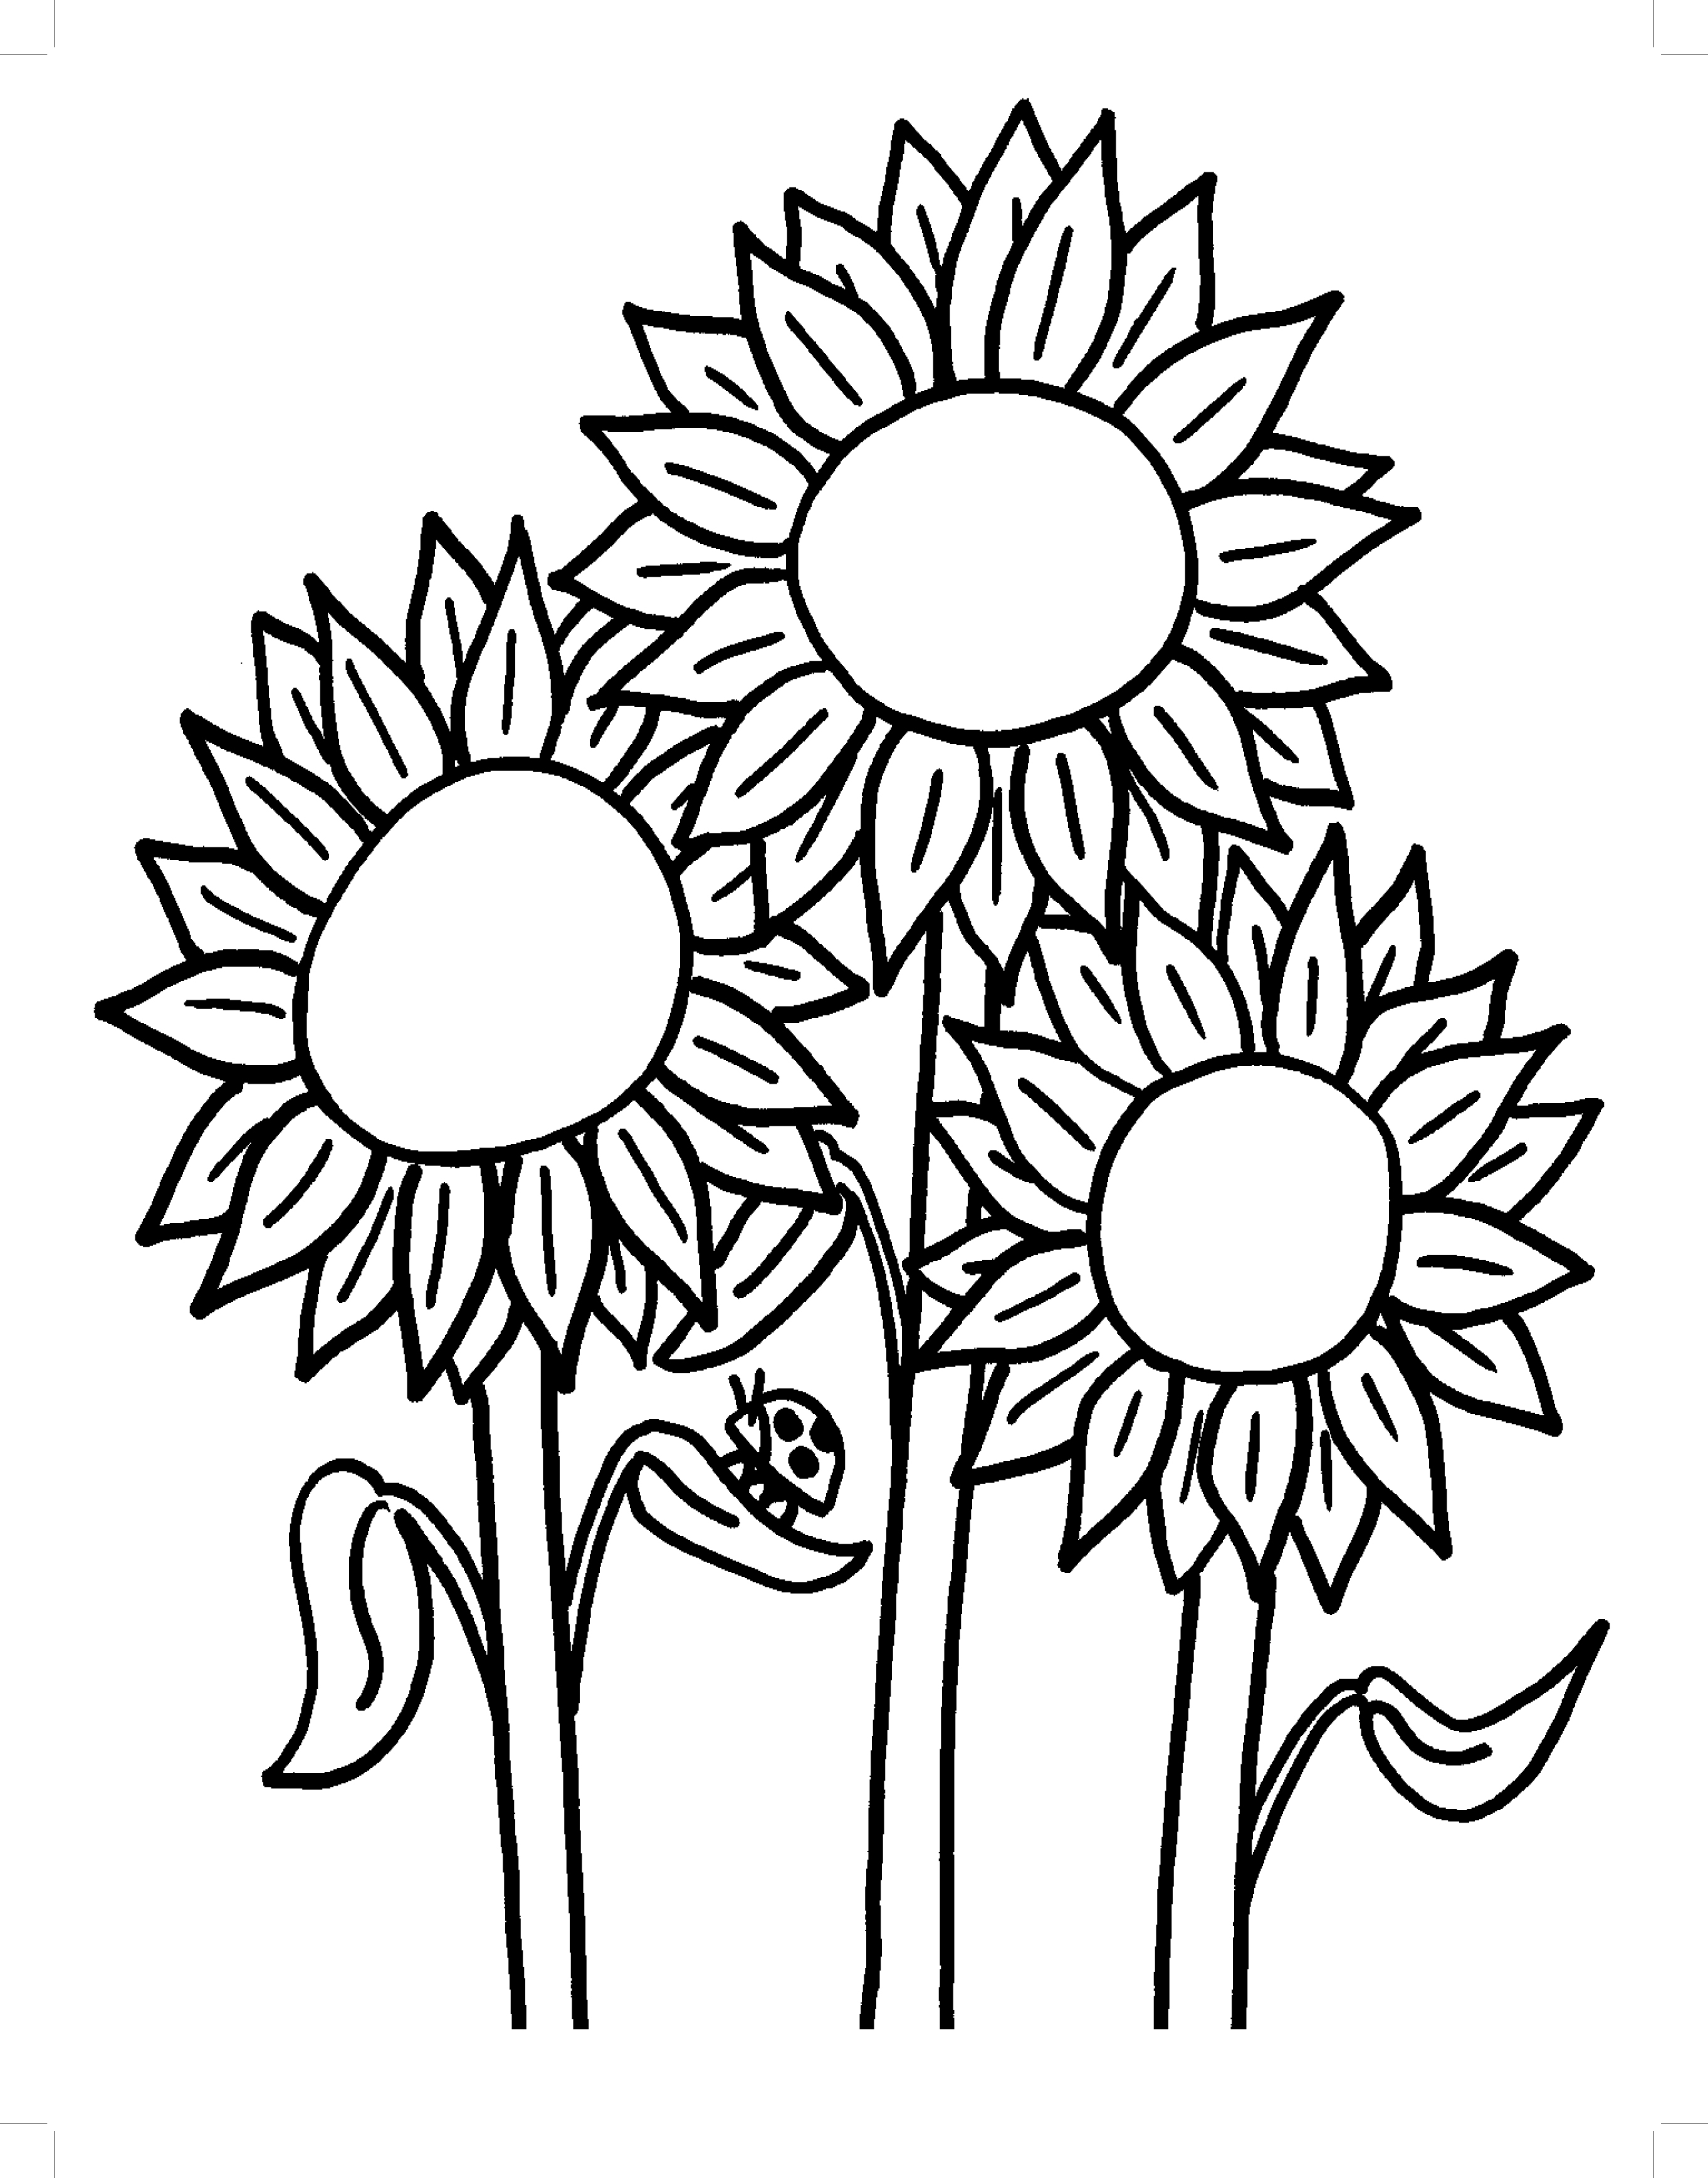 sunflower coloring page sunflower is blooming coloring page download print sunflower page coloring